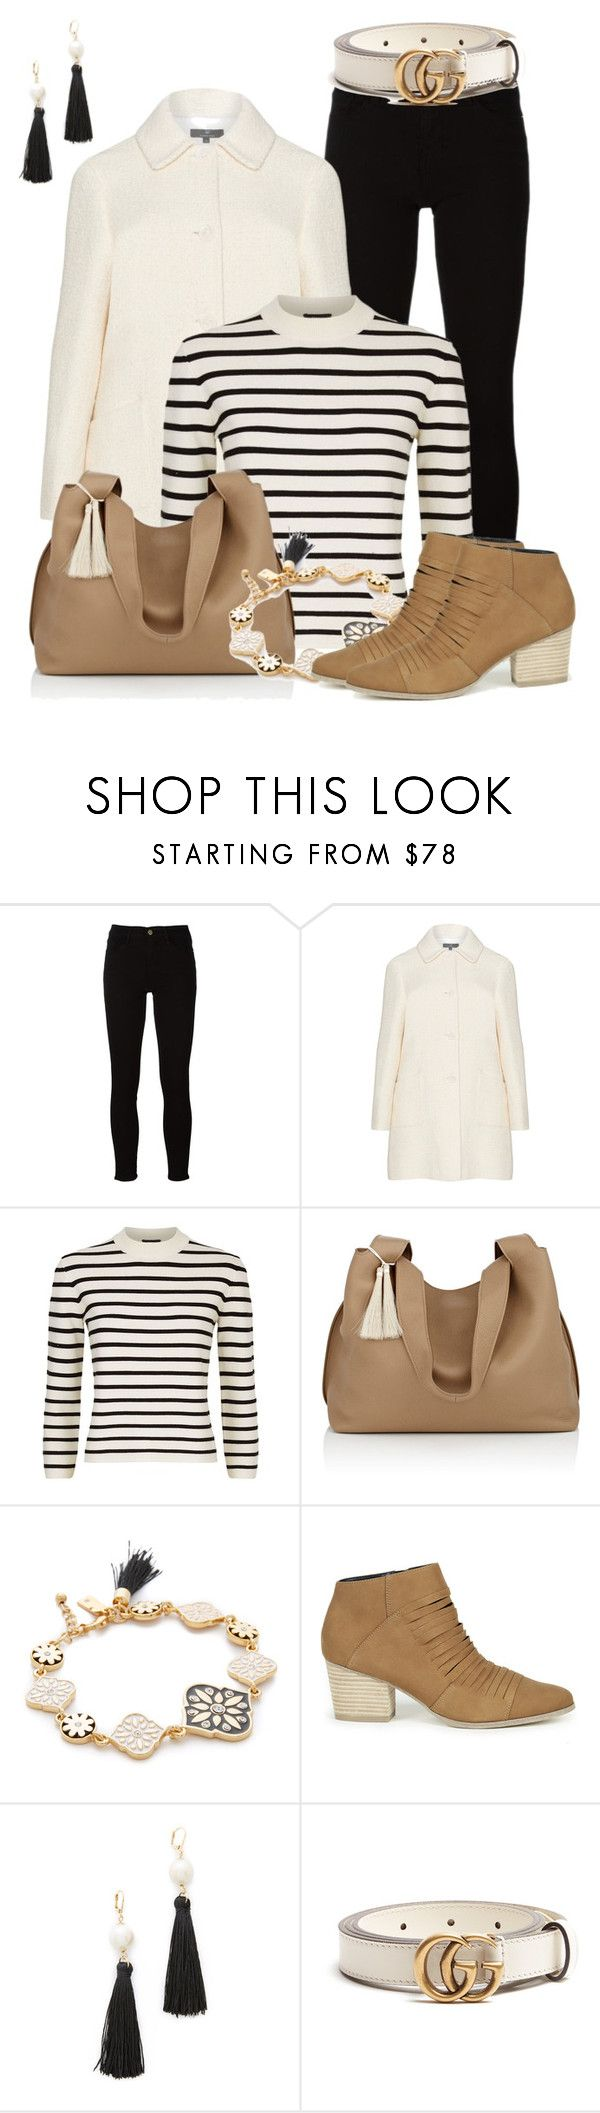 """""""Striped Top"""" by lchar ❤ liked on Polyvore featuring Frame, Theory, The Row, Kate Spade, Sole Society and Gucci"""